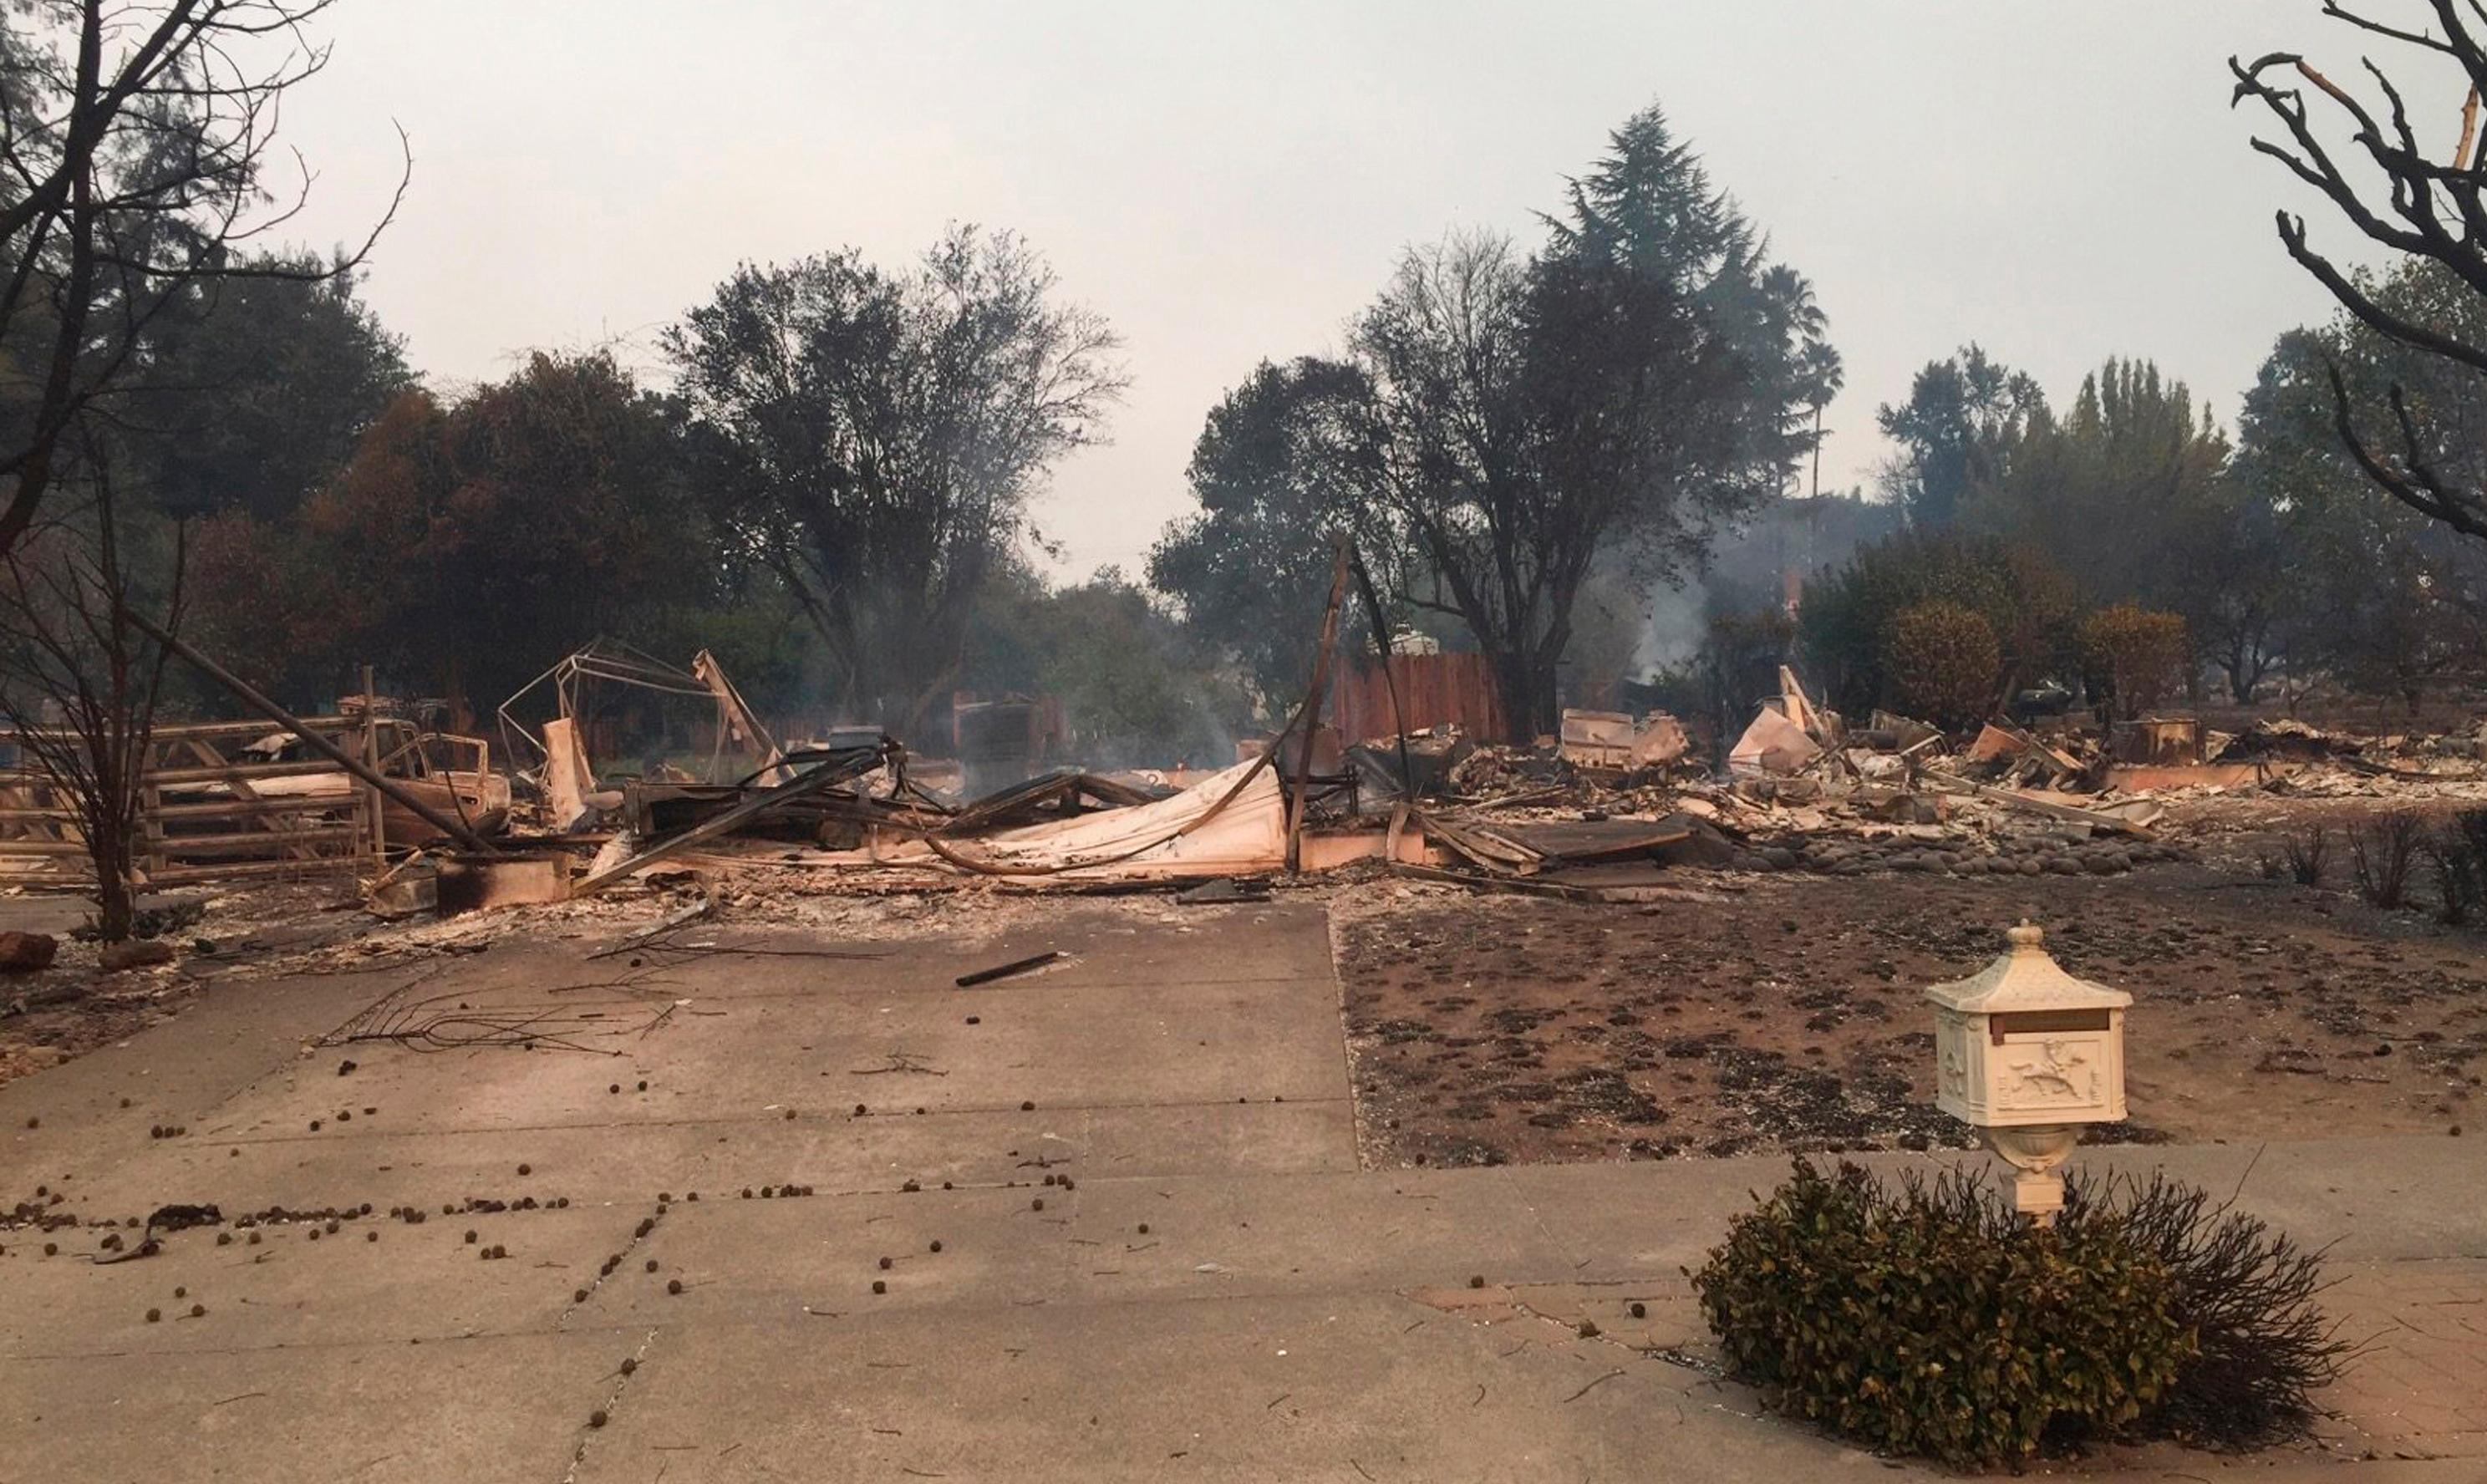 This Monday, Oct. 9, 2017, photo provided by Dominic Foppoli shows Jeff Okrepki's house leveled by a wildfire that tore through the Coffey Park subdivision of Santa Rosa, Calif. State authorities are deploying more firefighters and law enforcement officials to areas devastated by wildfires raging in Northern California. (Dominic Foppoli via AP)